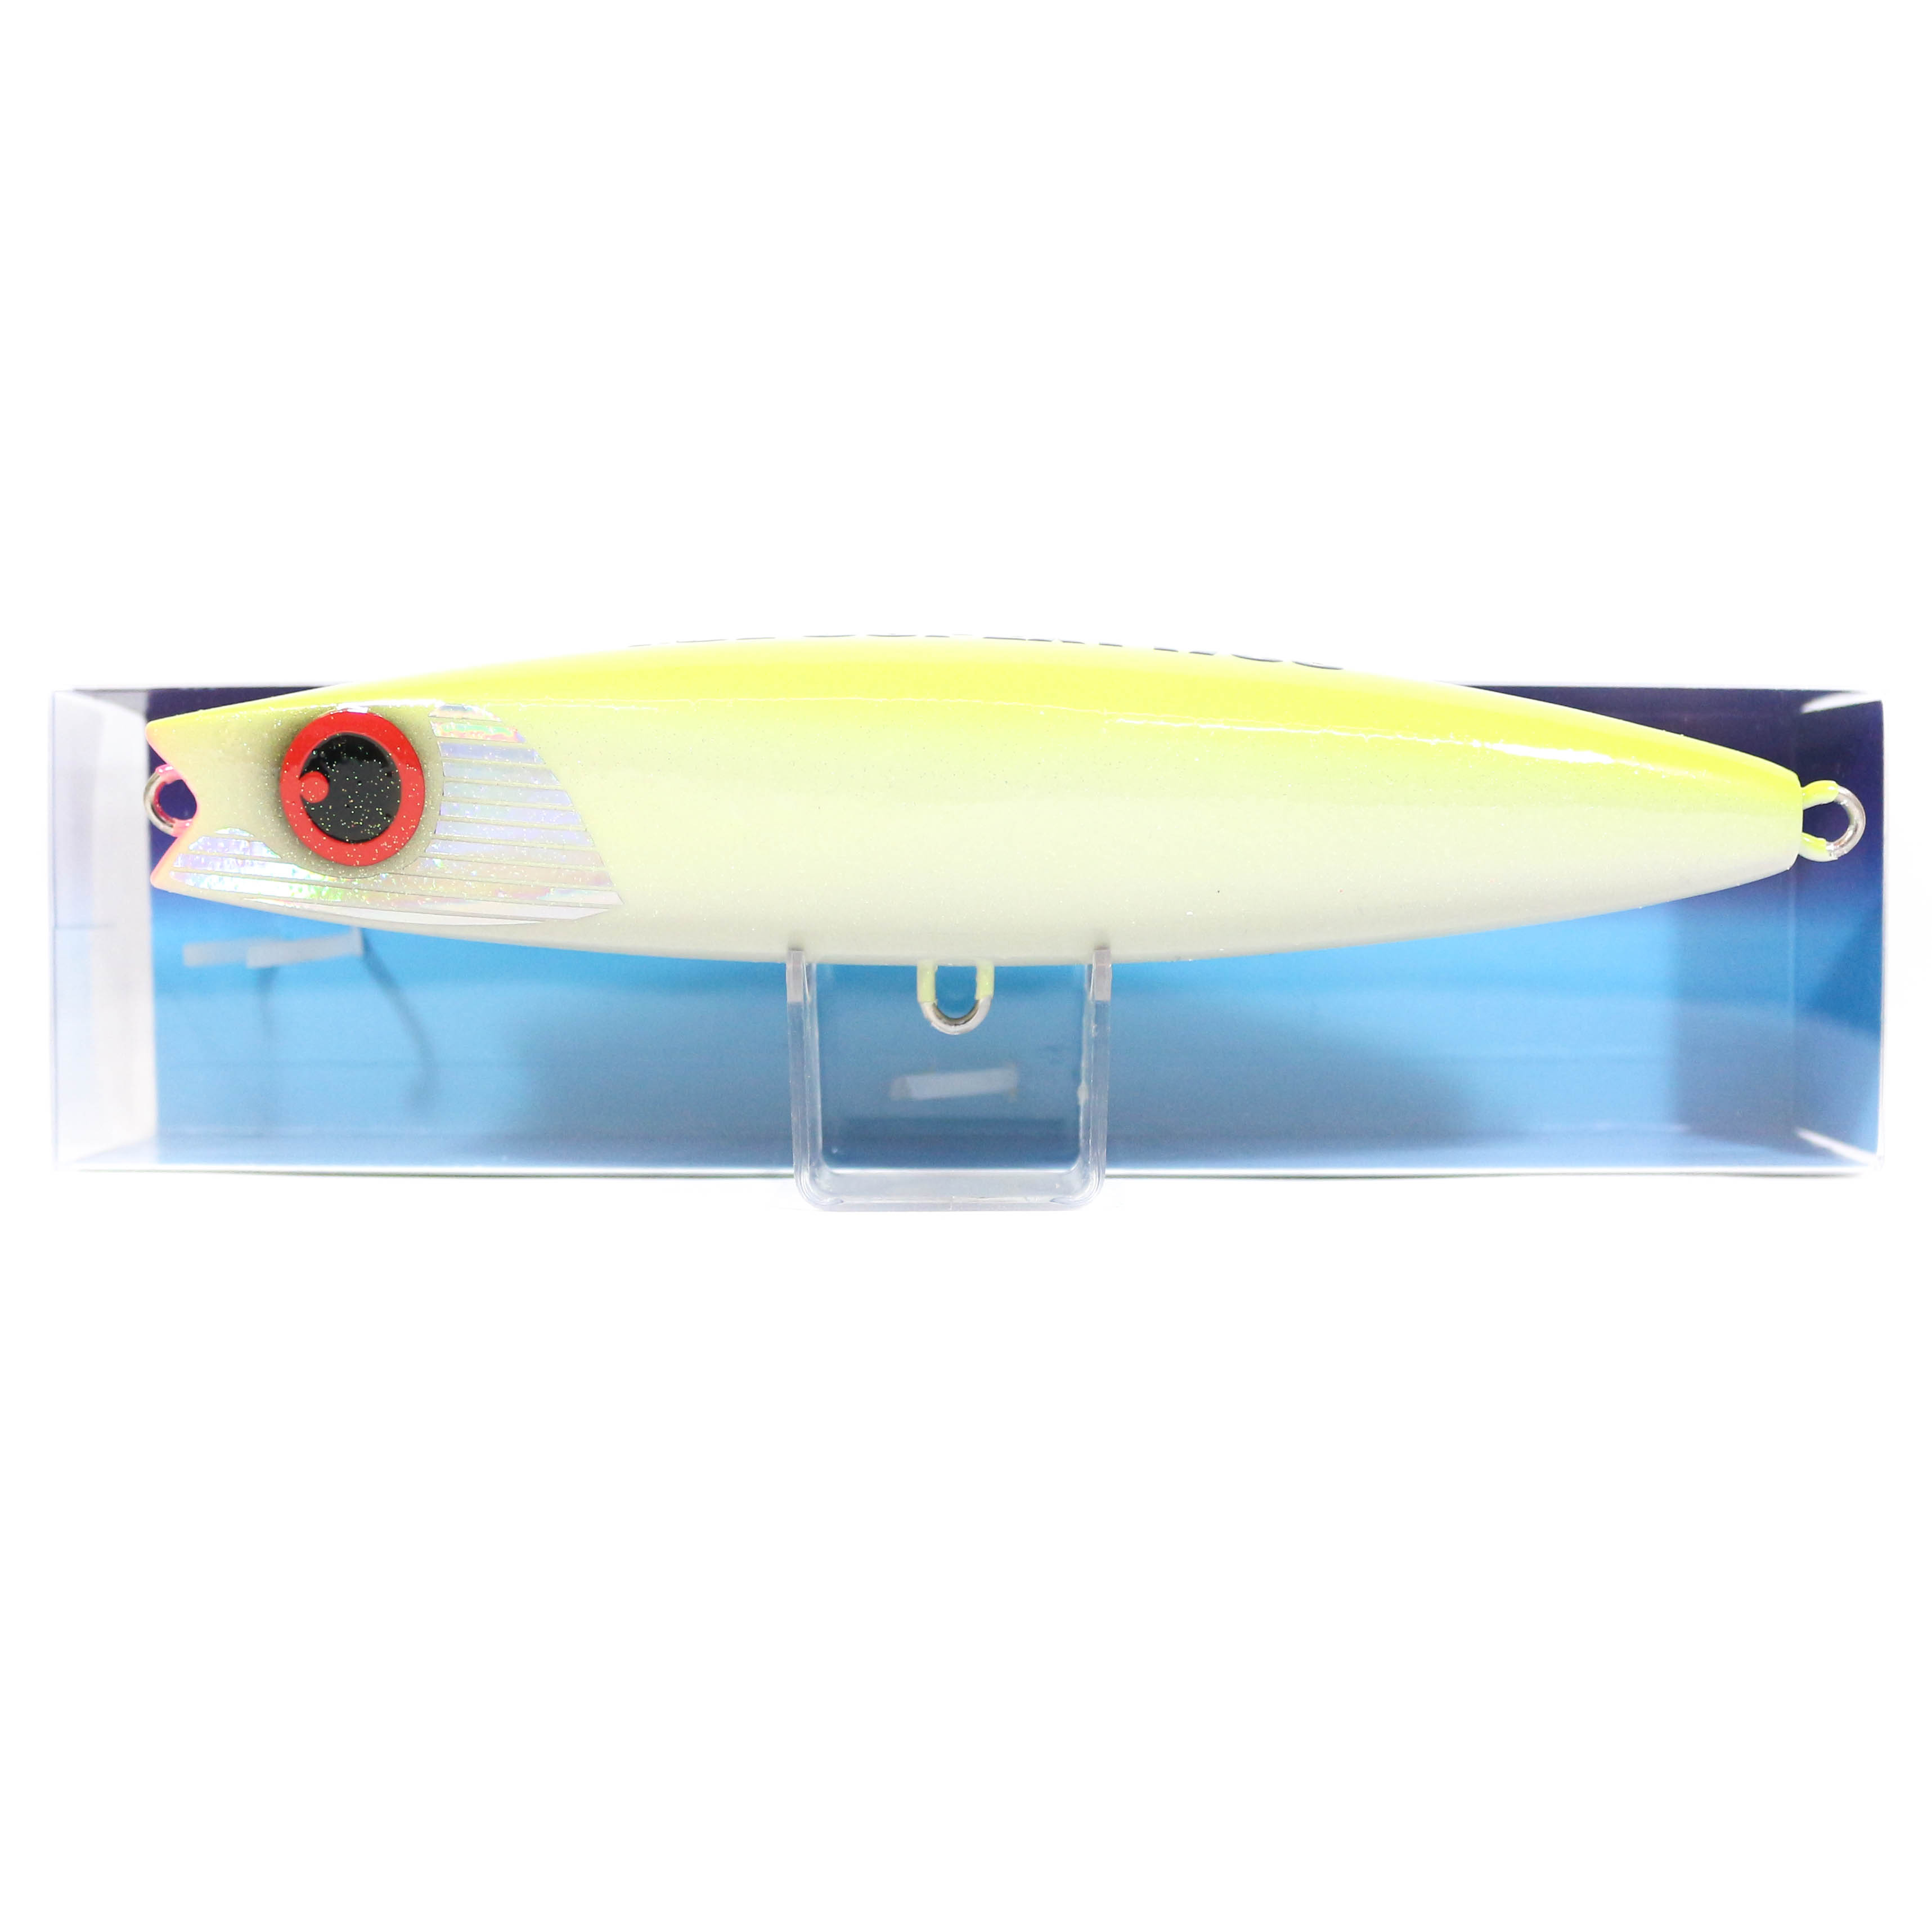 FCL Labo Stick Bait CSP EXT 170S Sinking Lure MGCH (4274)